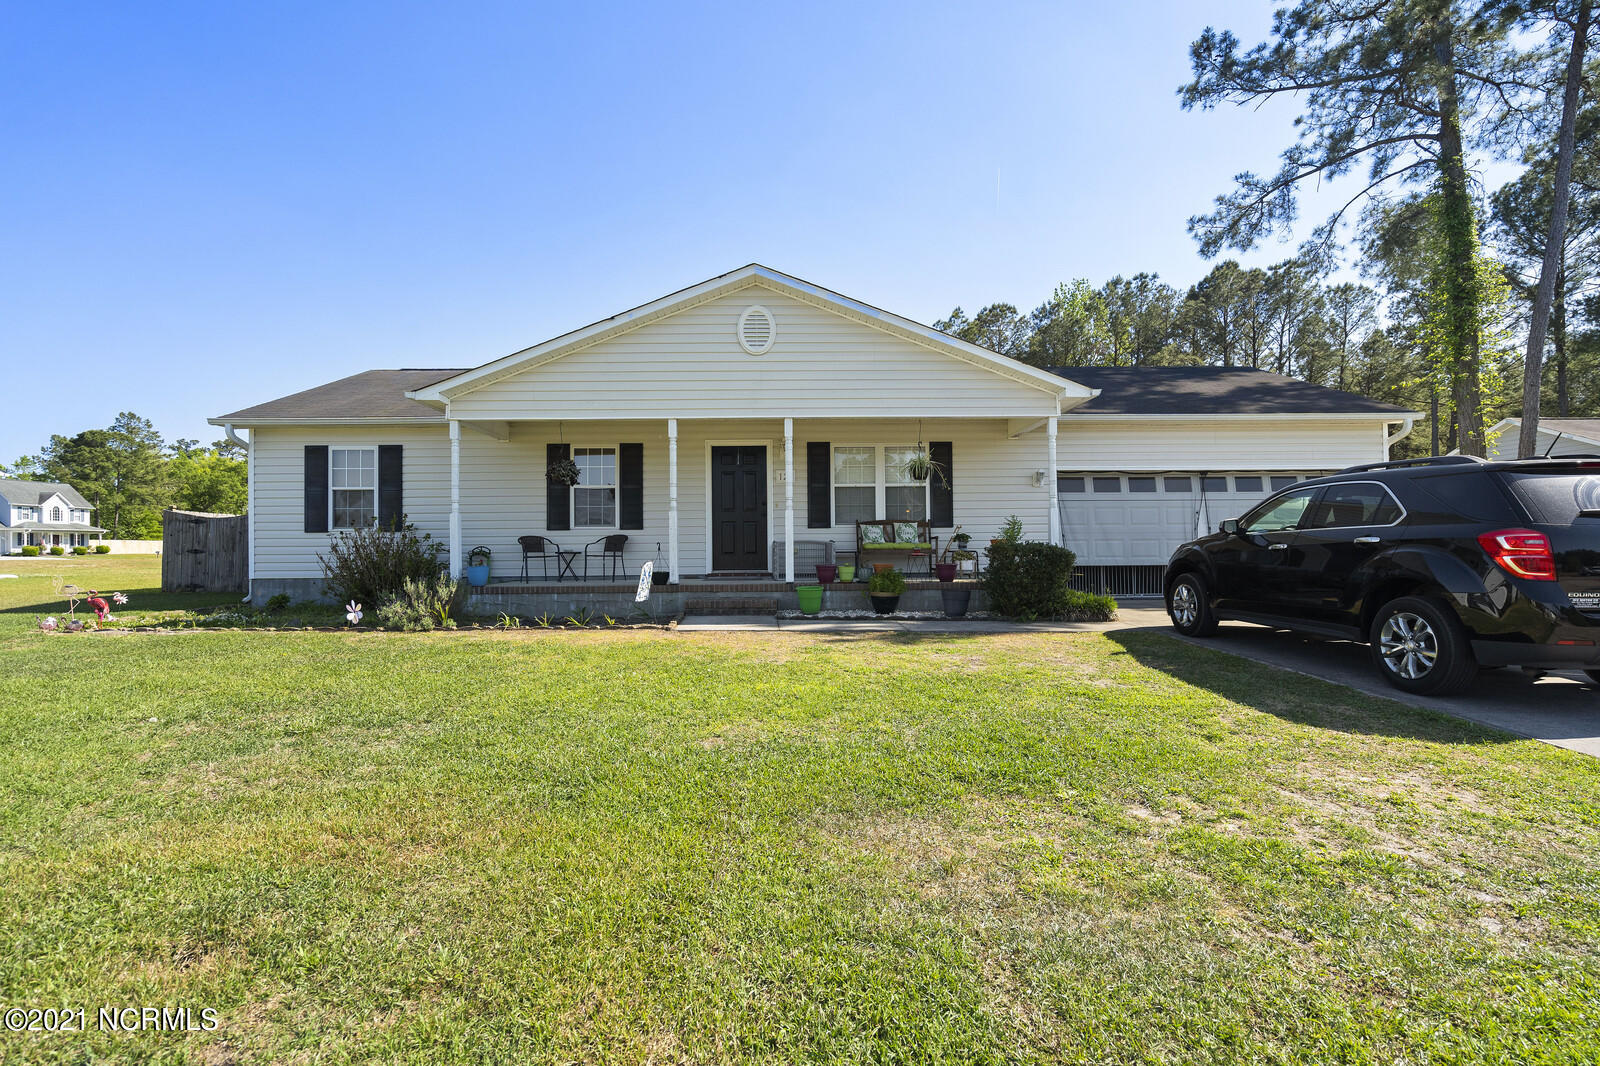 Bishop Ridge is located in the sought after Southwest area of Jacksonville. In a rural area with no city taxes or HOA, this home has a great fenced in back yard ready for entertaining on summer nights. 3 bedrooms and 2 full bathrooms complete this single family home with no carpet in the home, making for easy maintenance!